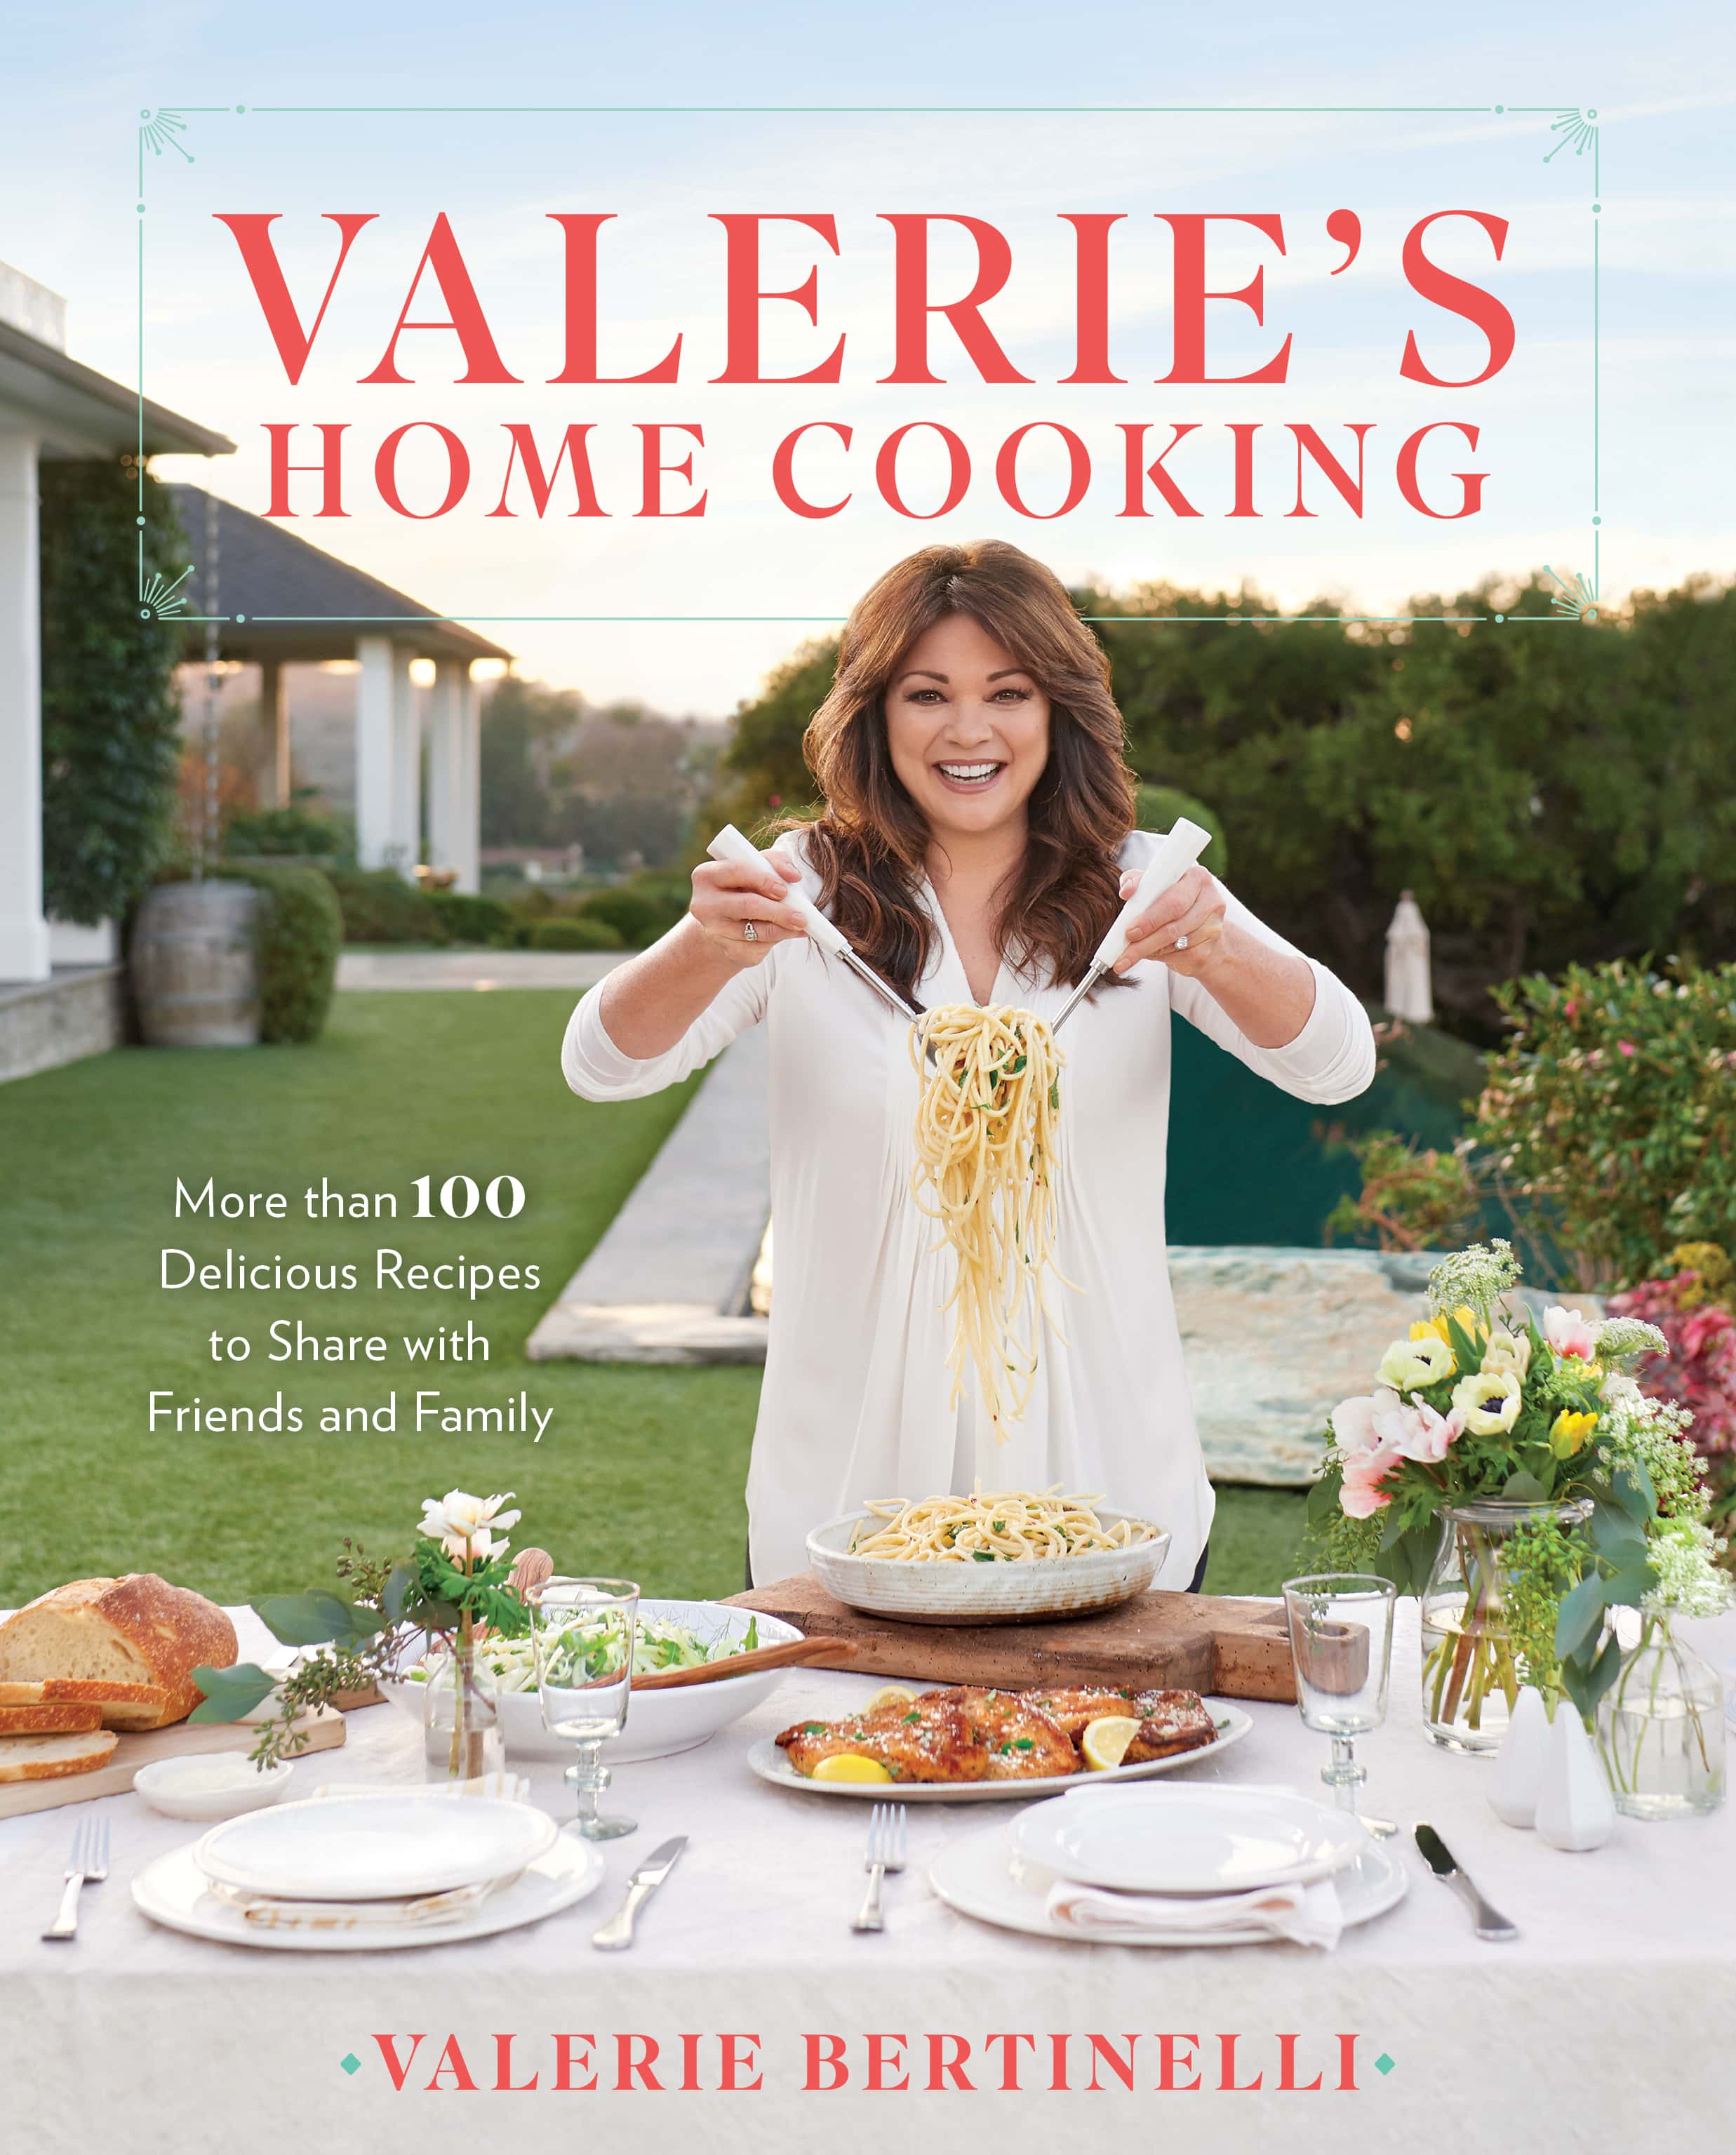 Valerie's Home Cooking Cookbook Cover